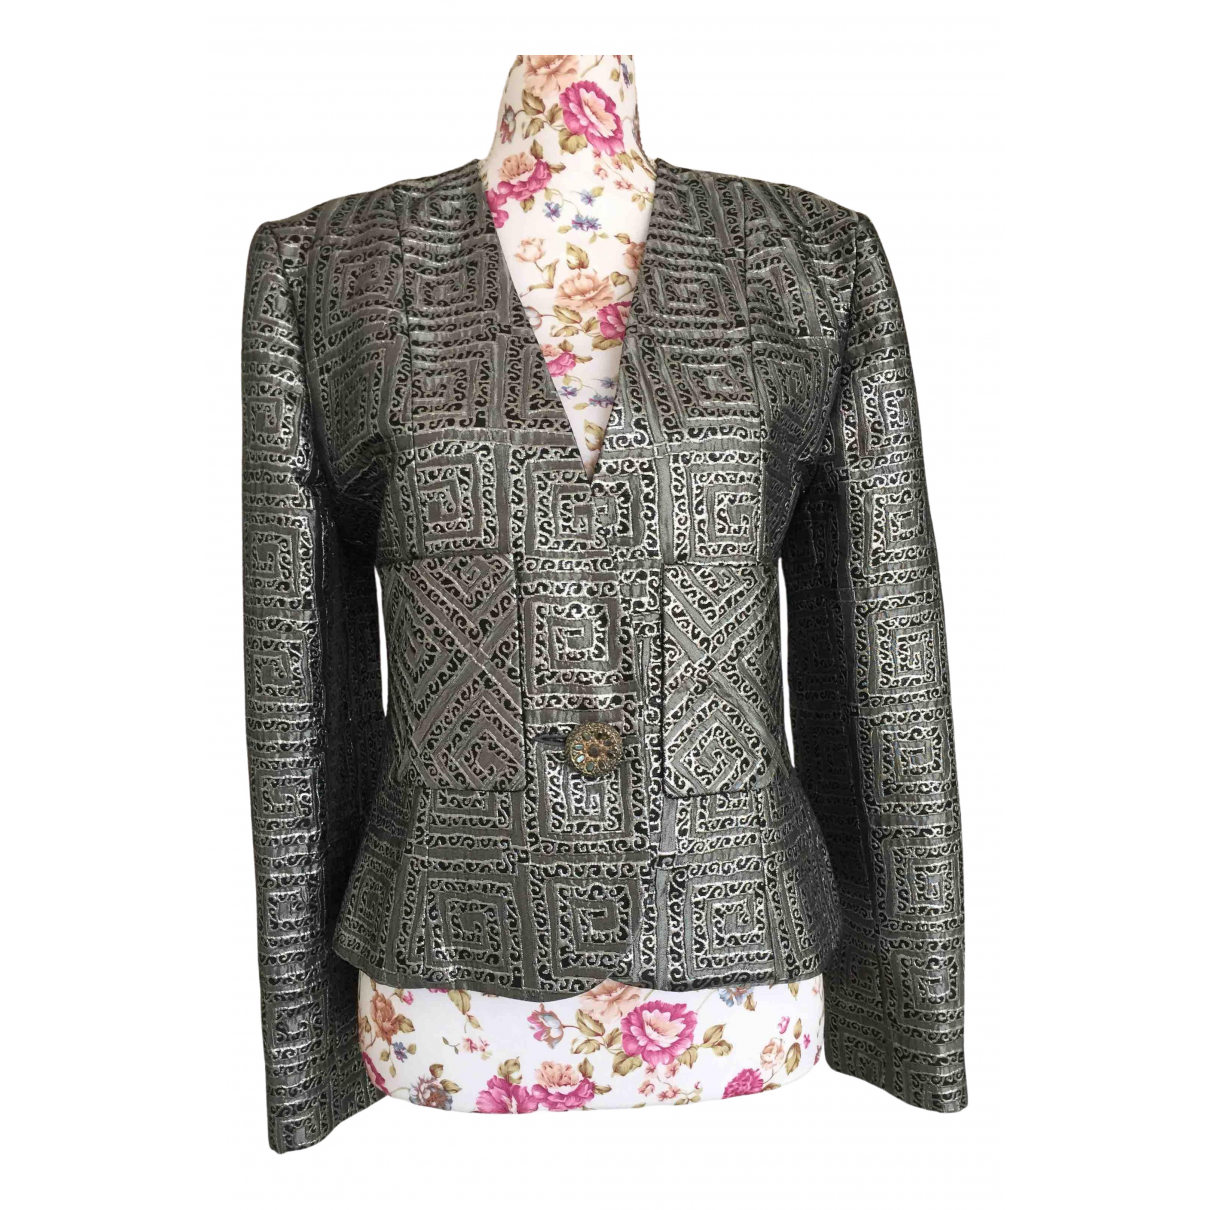 Givenchy \N Silver jacket for Women 38 FR